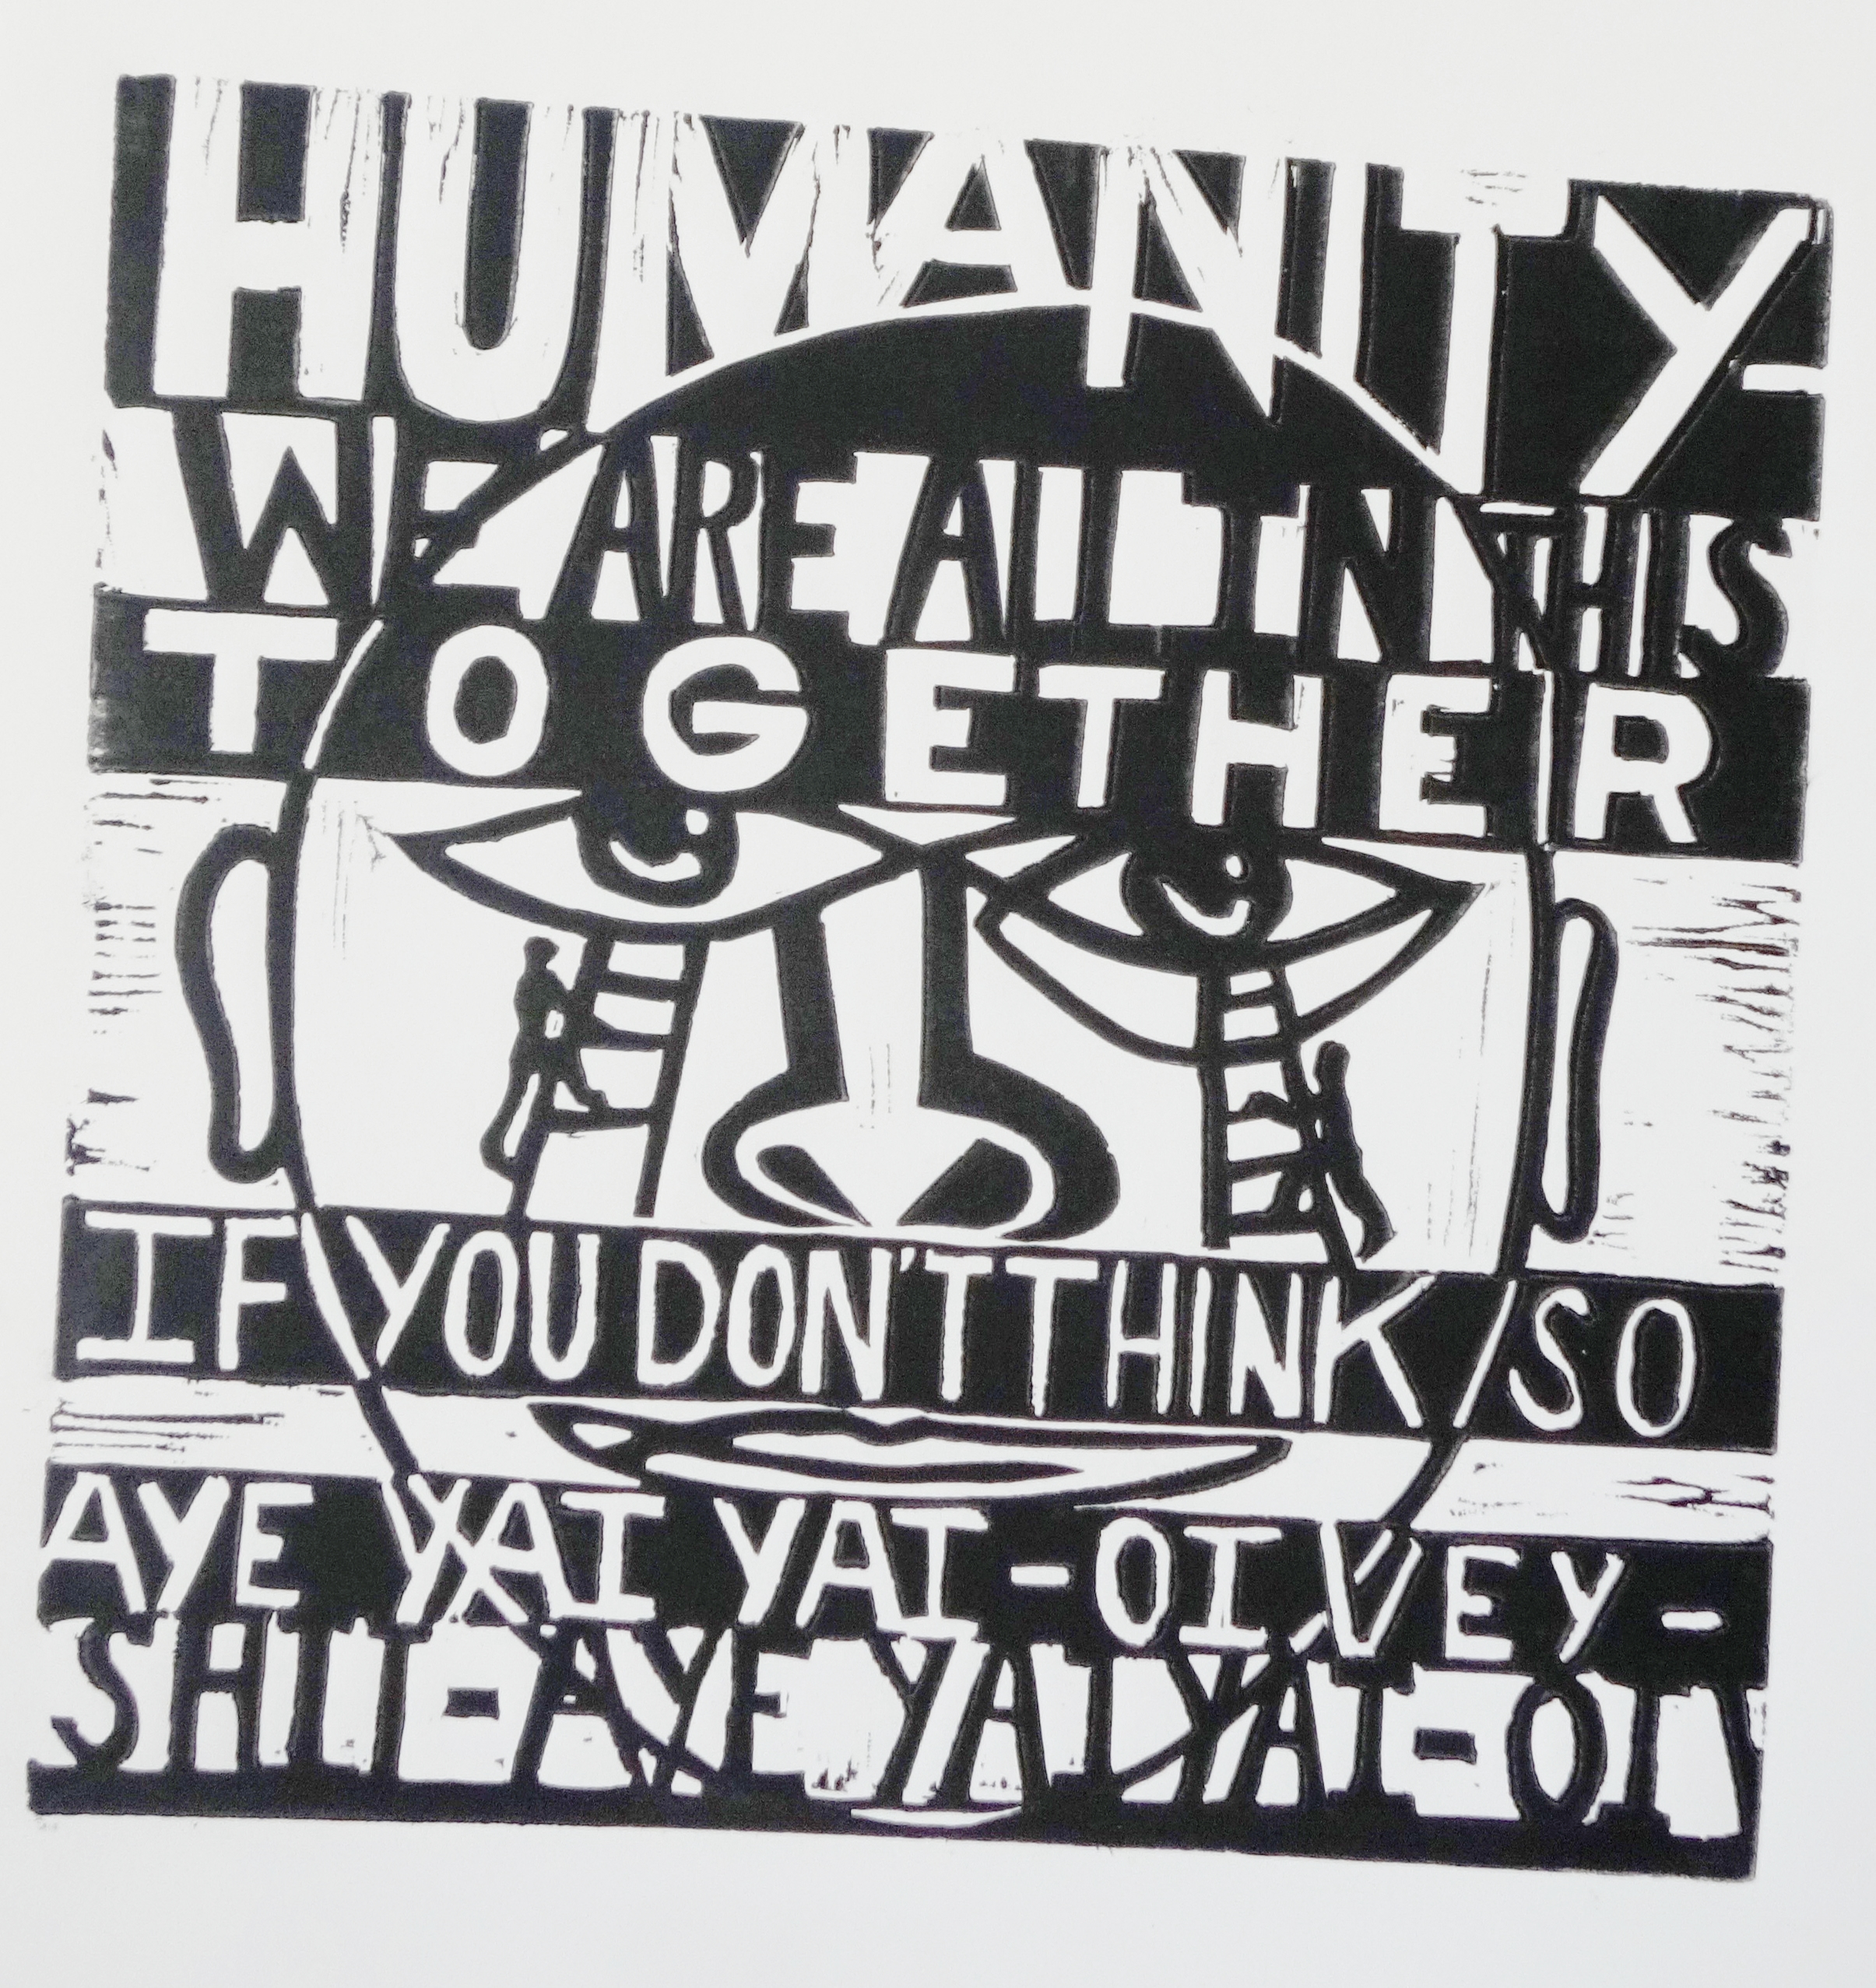 Humanity/ We Are All In This Together/If you Don't Think So/ Aye Yai Yai/Oi Vey/Shit/ Ayi Yai Yai/ Oi........